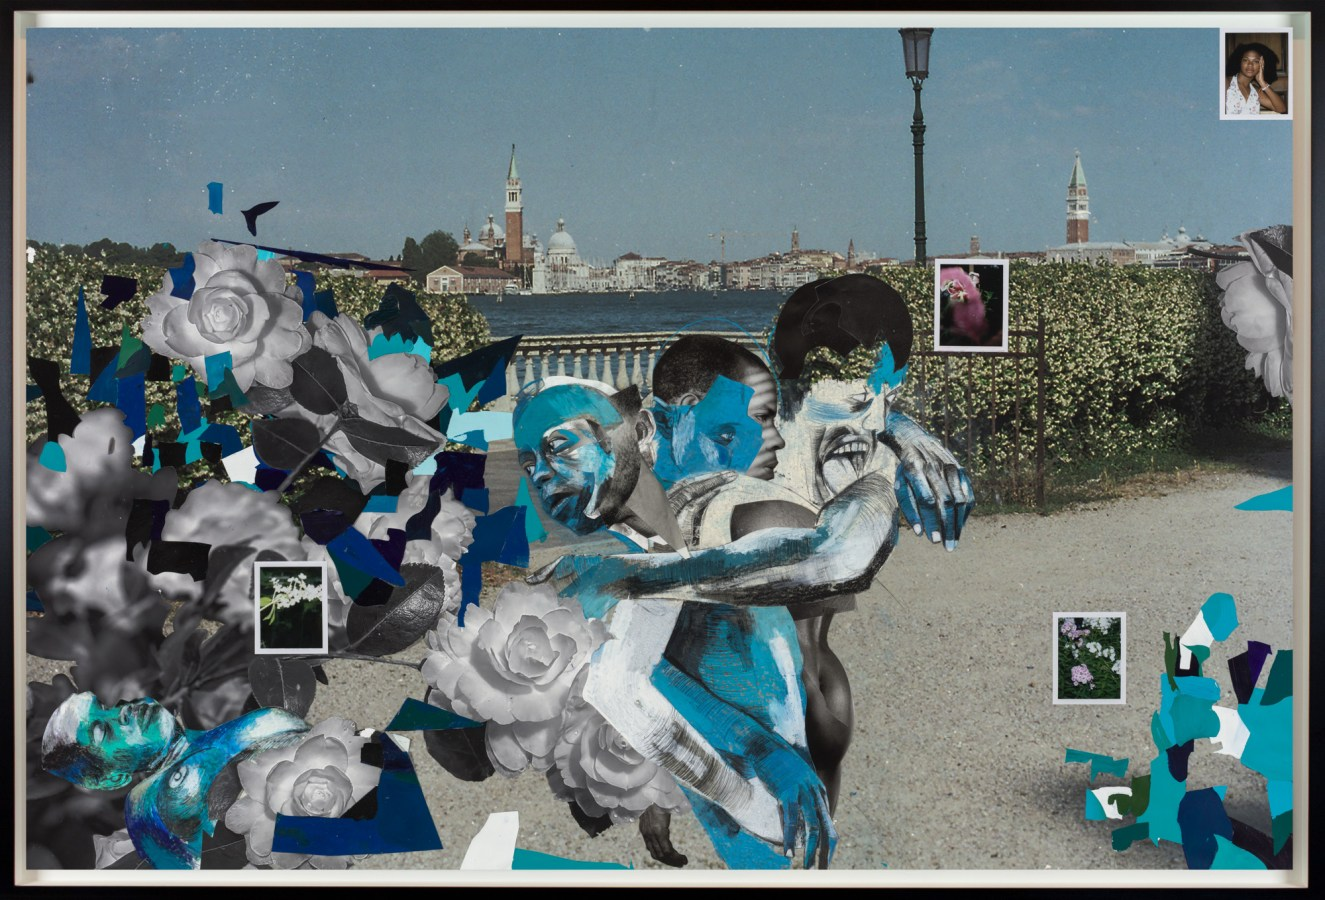 A collage of three figures embracing, surrounded by flowers. The background is an image of Venice.